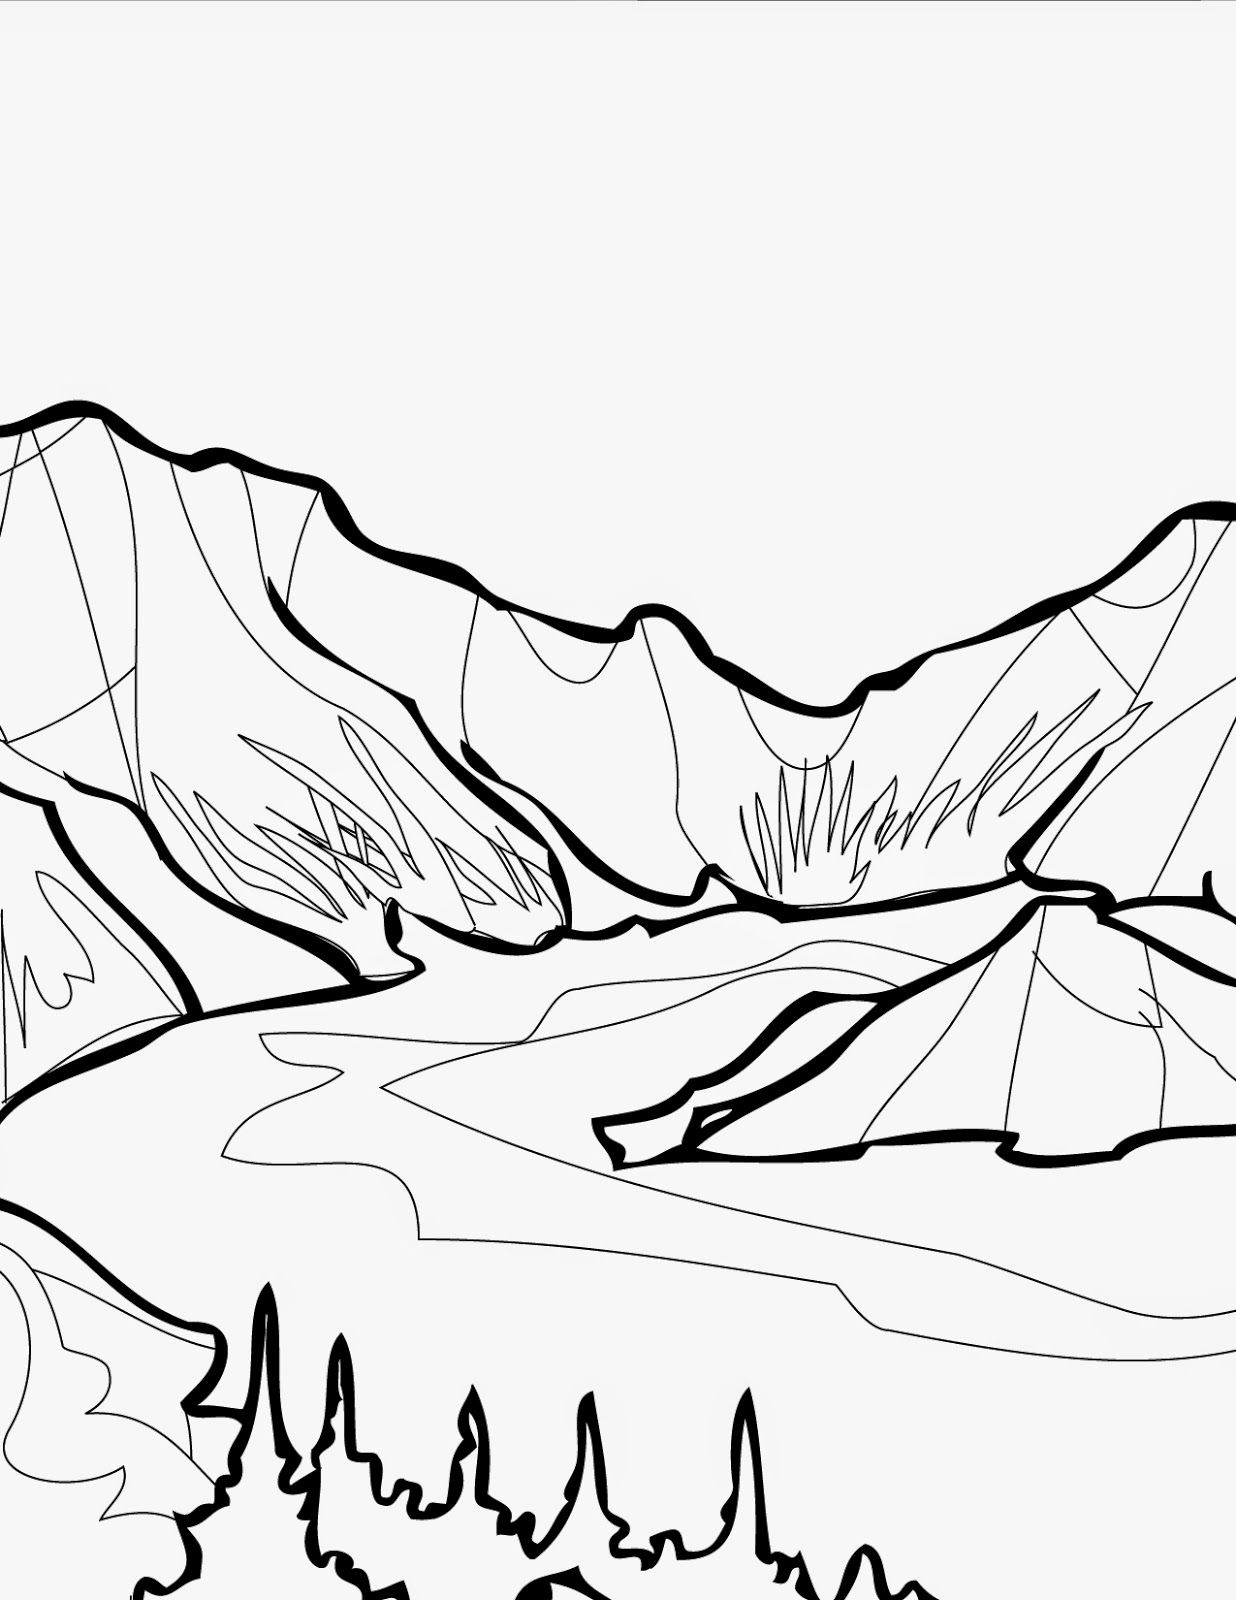 free coloring pages National Parks Google Search in 2020